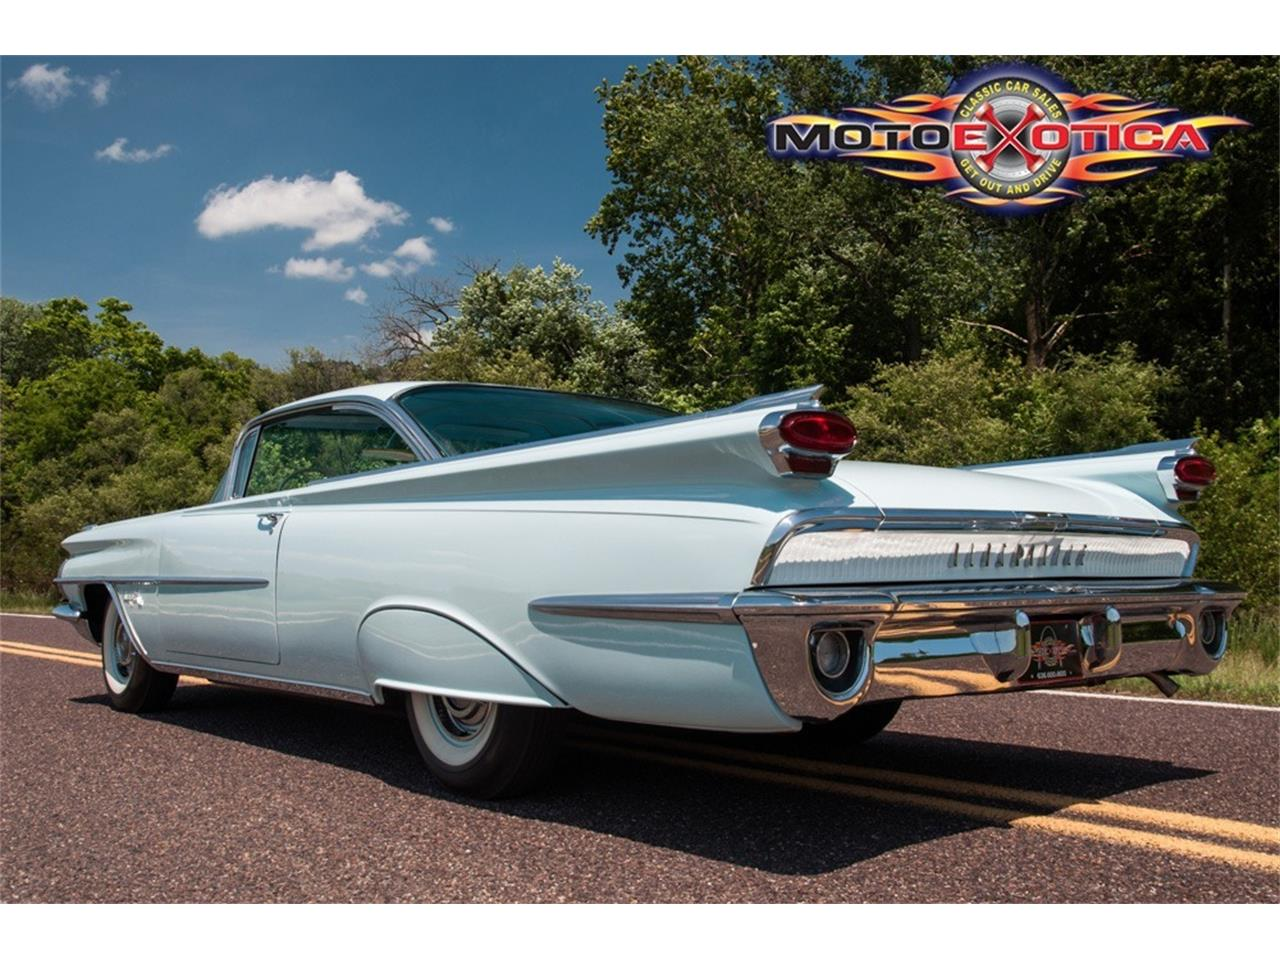 Large Picture of 1959 Super 88 located in Missouri Offered by MotoeXotica Classic Cars - LG56